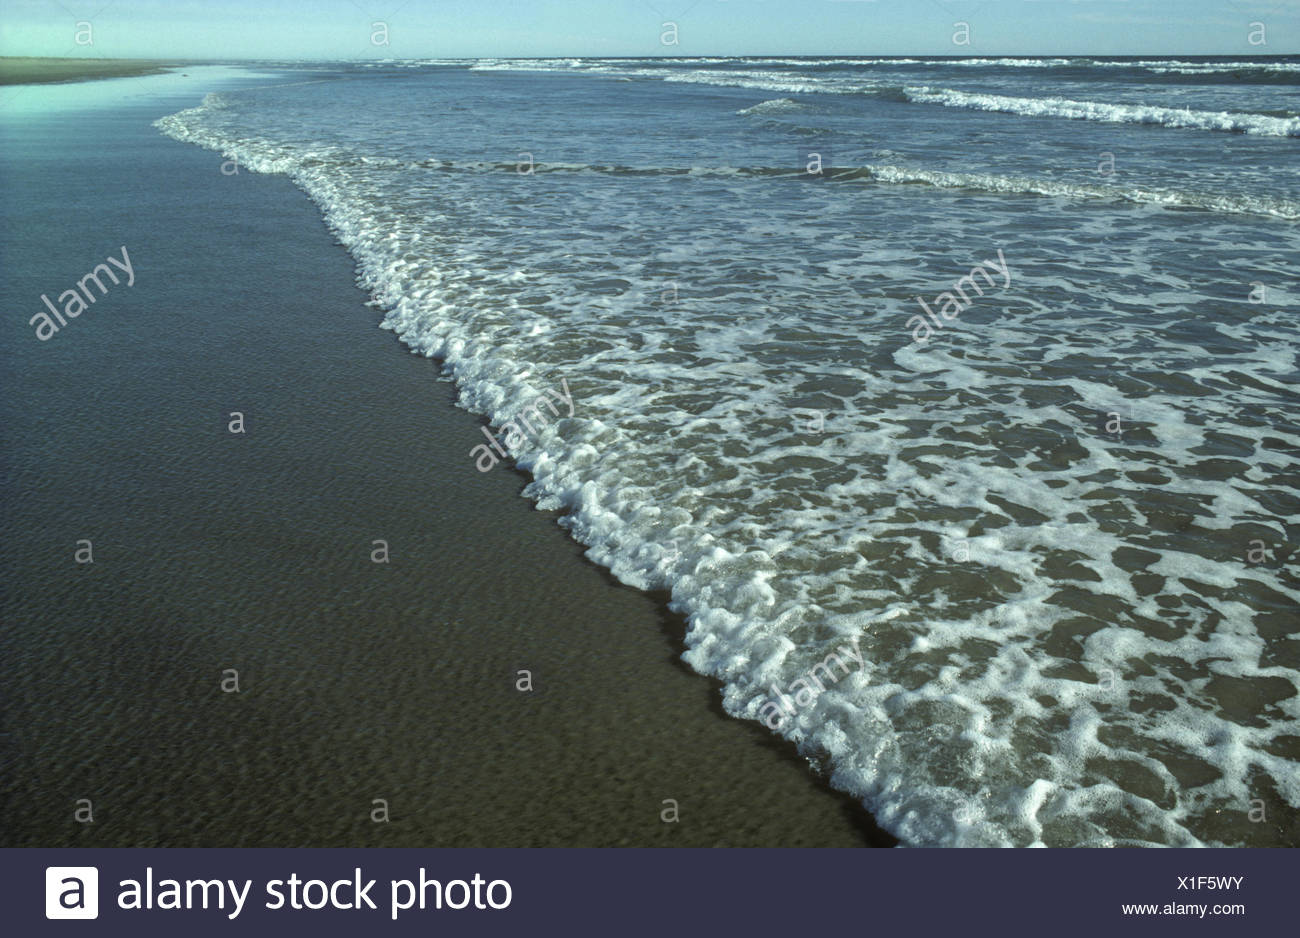 Gentle breaking waves on a sandy beach in the UK - Stock Image